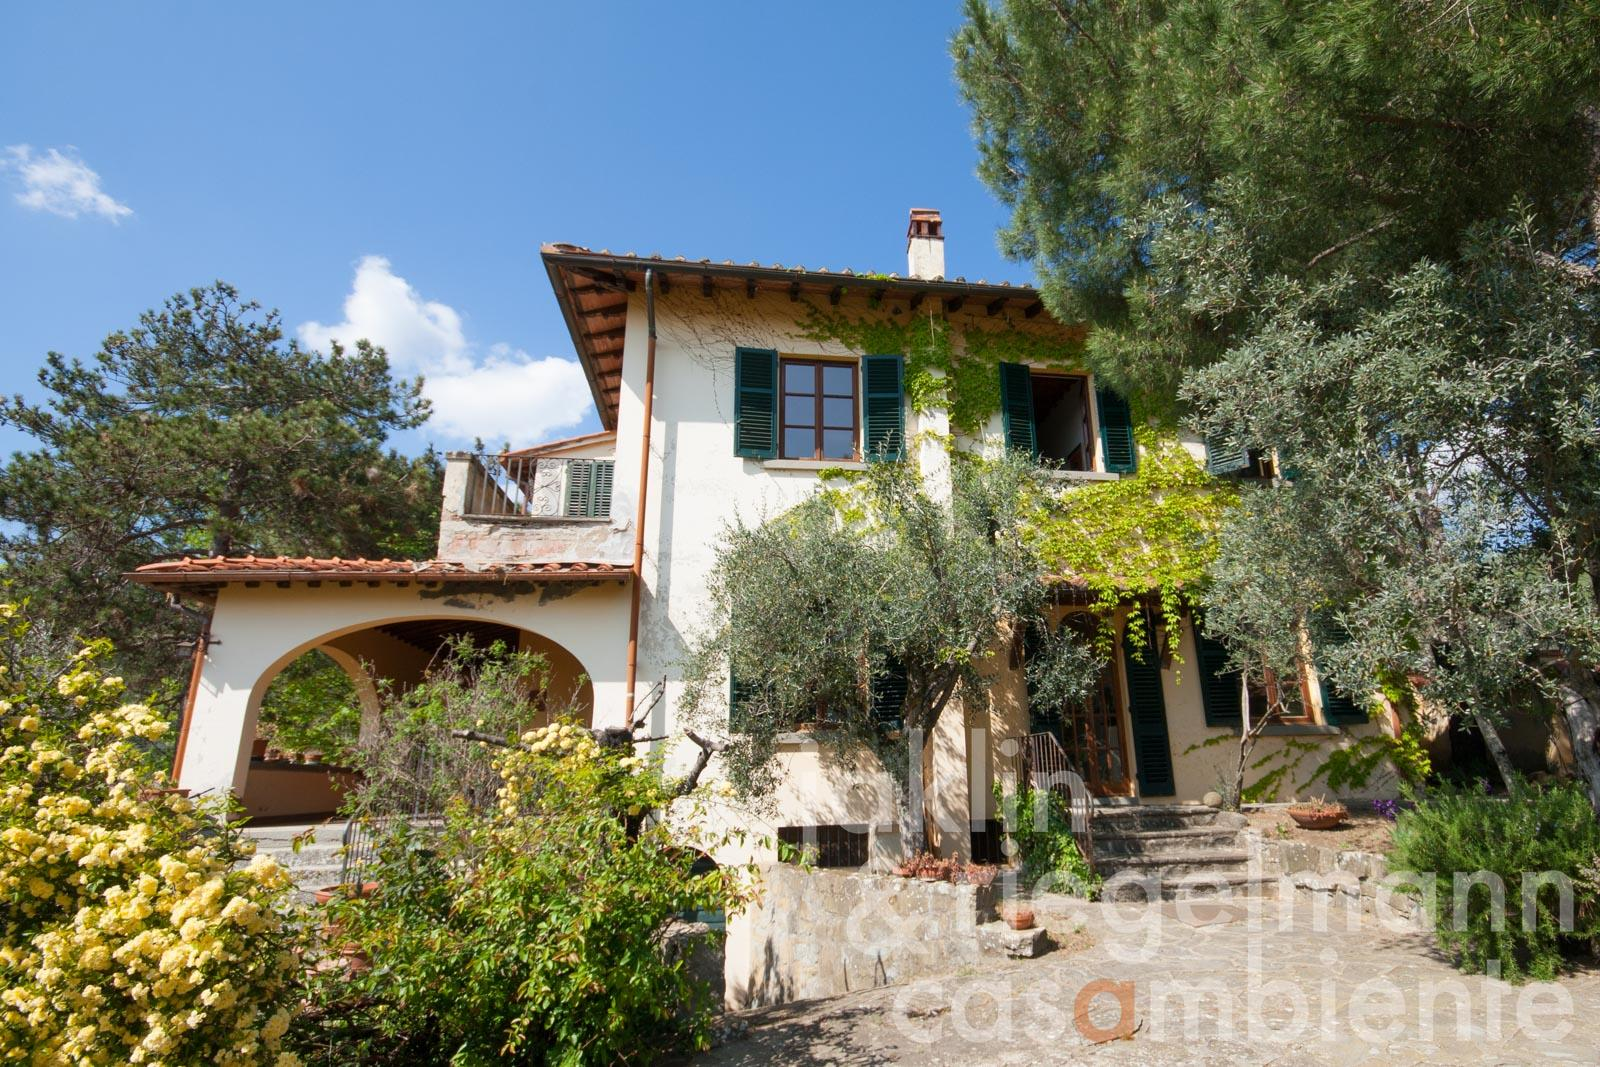 Classic Tuscan villa with painter's studio in Valdarno in Tuscany